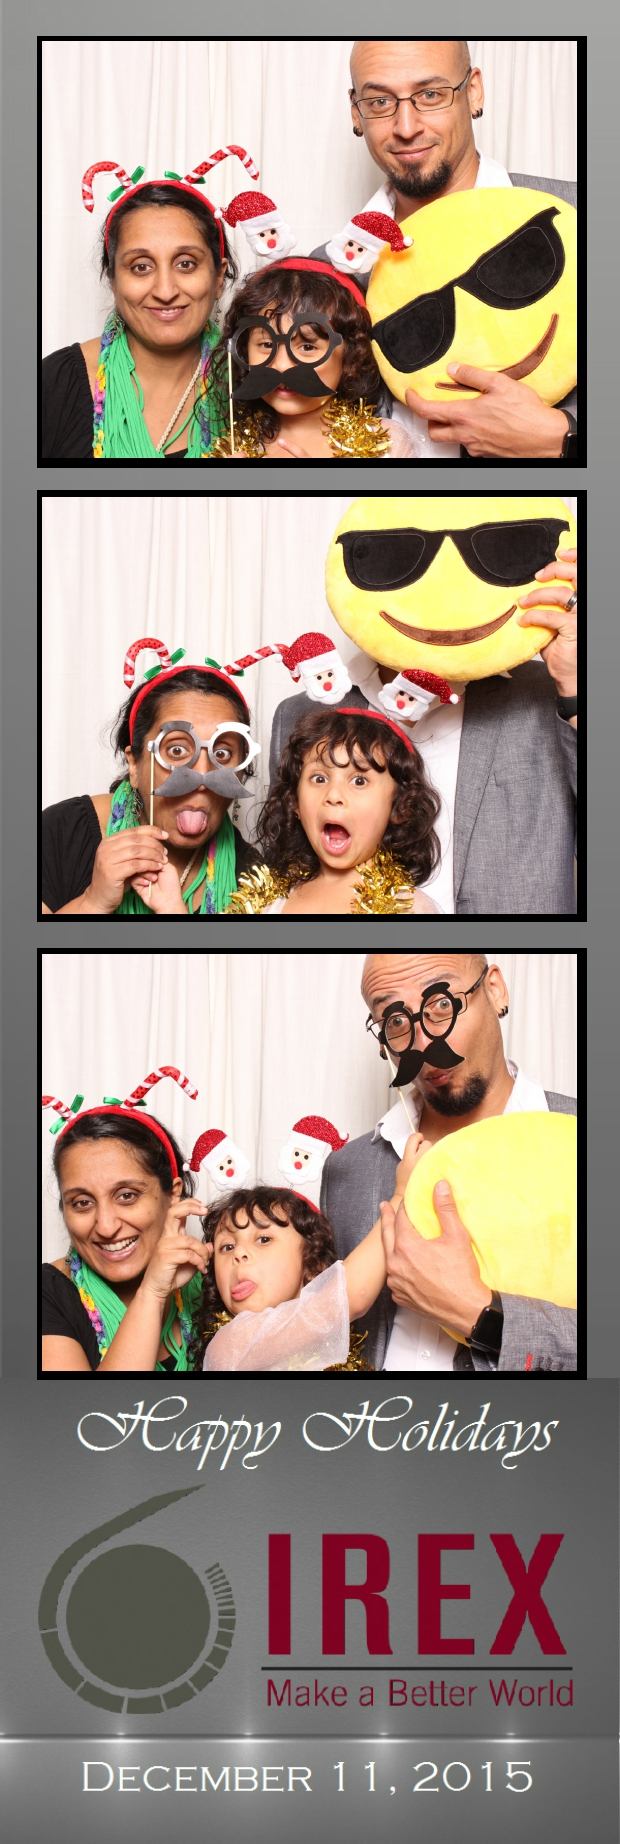 Guest House Events Photo Booth Strips IREX (72).jpg